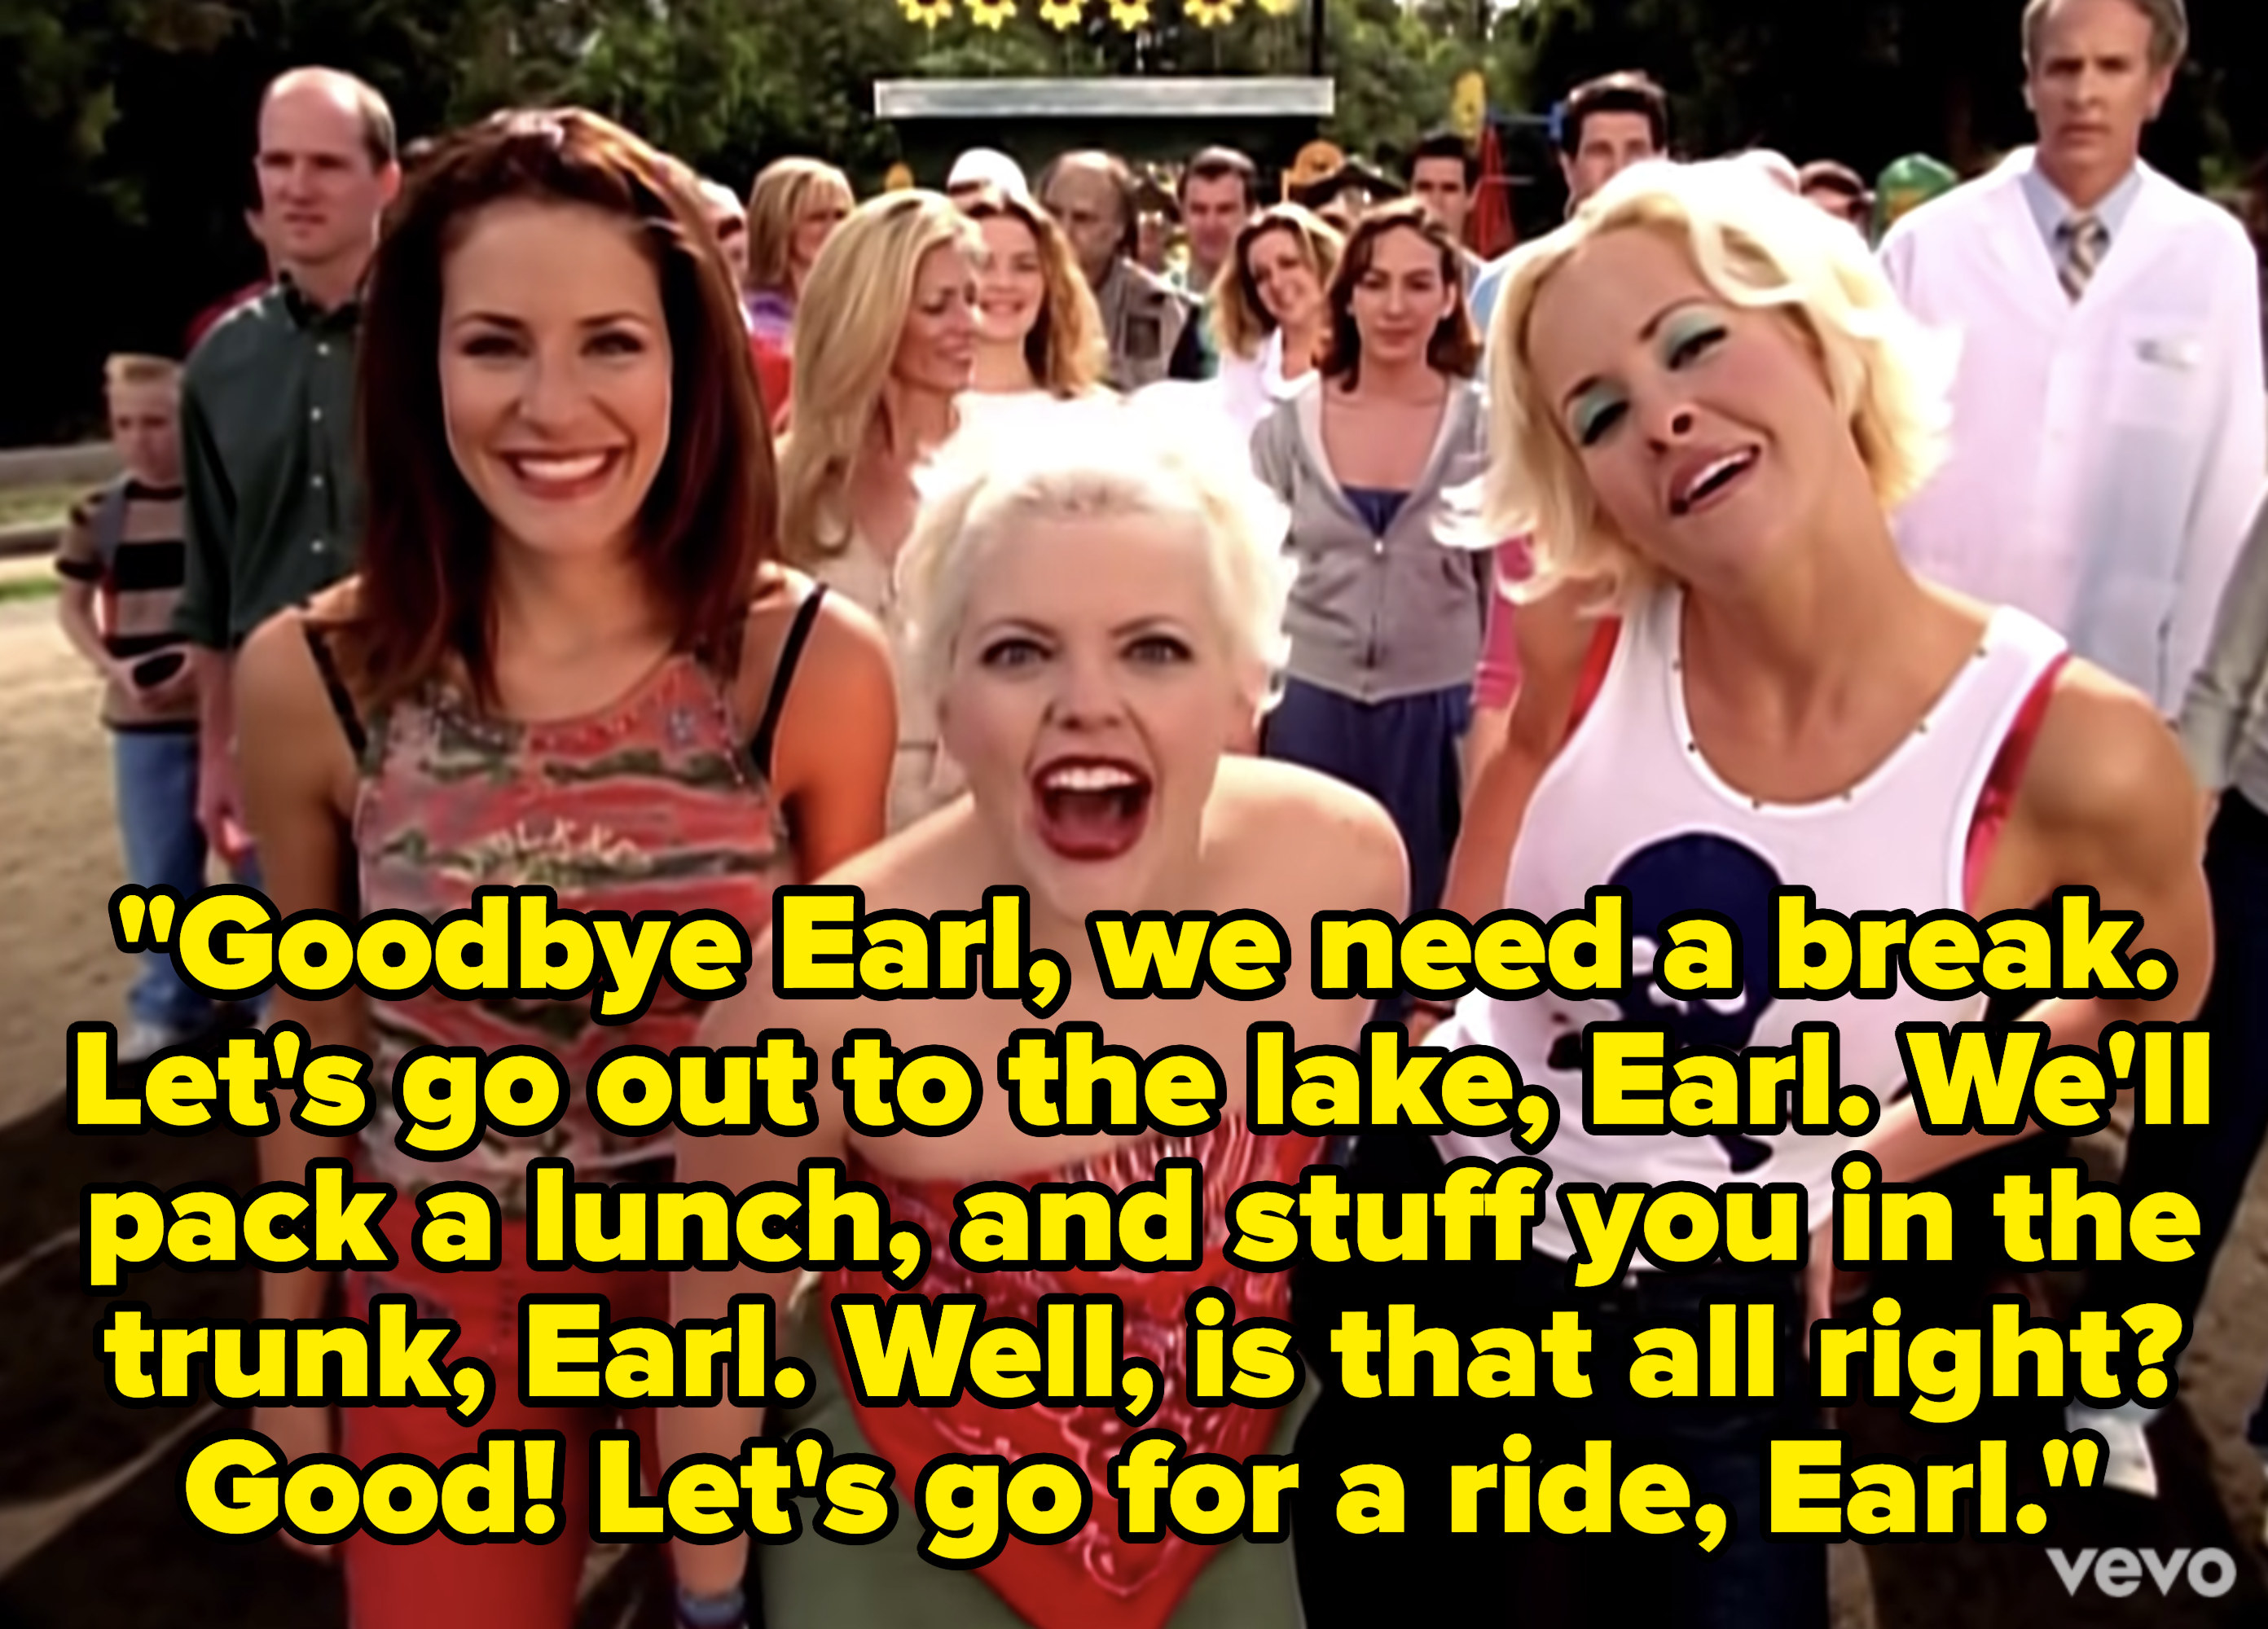 Lyrics: Goodbye Earl, we need a break. Let's go out to the lake, Earl. We'll pack a lunch, and stuff you in the trunk, Earl. Well, is that all right? Good! Let's go for a ride, Earl